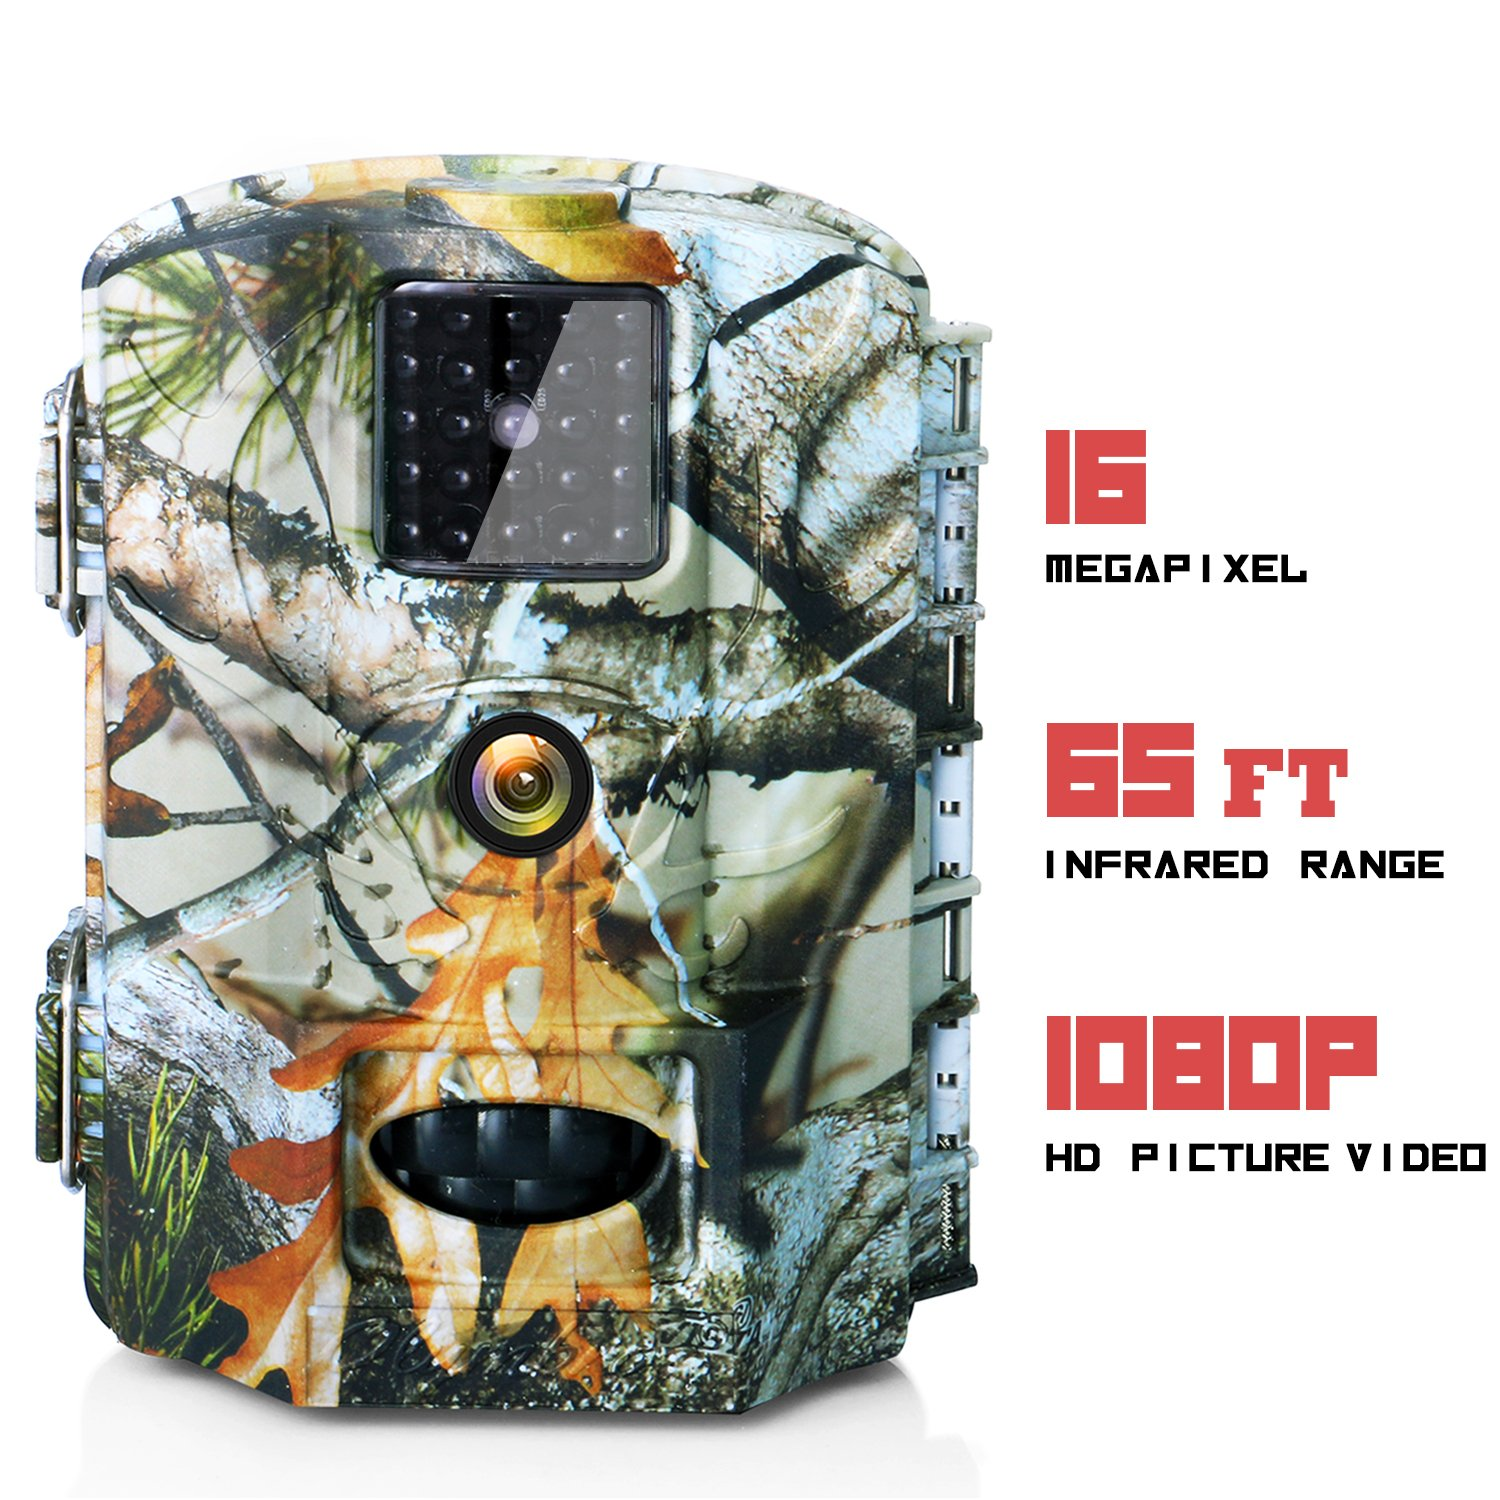 Olymbros Trail Camera 16MP Game Deer Hunting Cams Motion Activated Night Vision 65ft/20m No Glow IR LEDs IP65 Waterproof for Wildlife Scounting Home Security Outdoor Surveillance